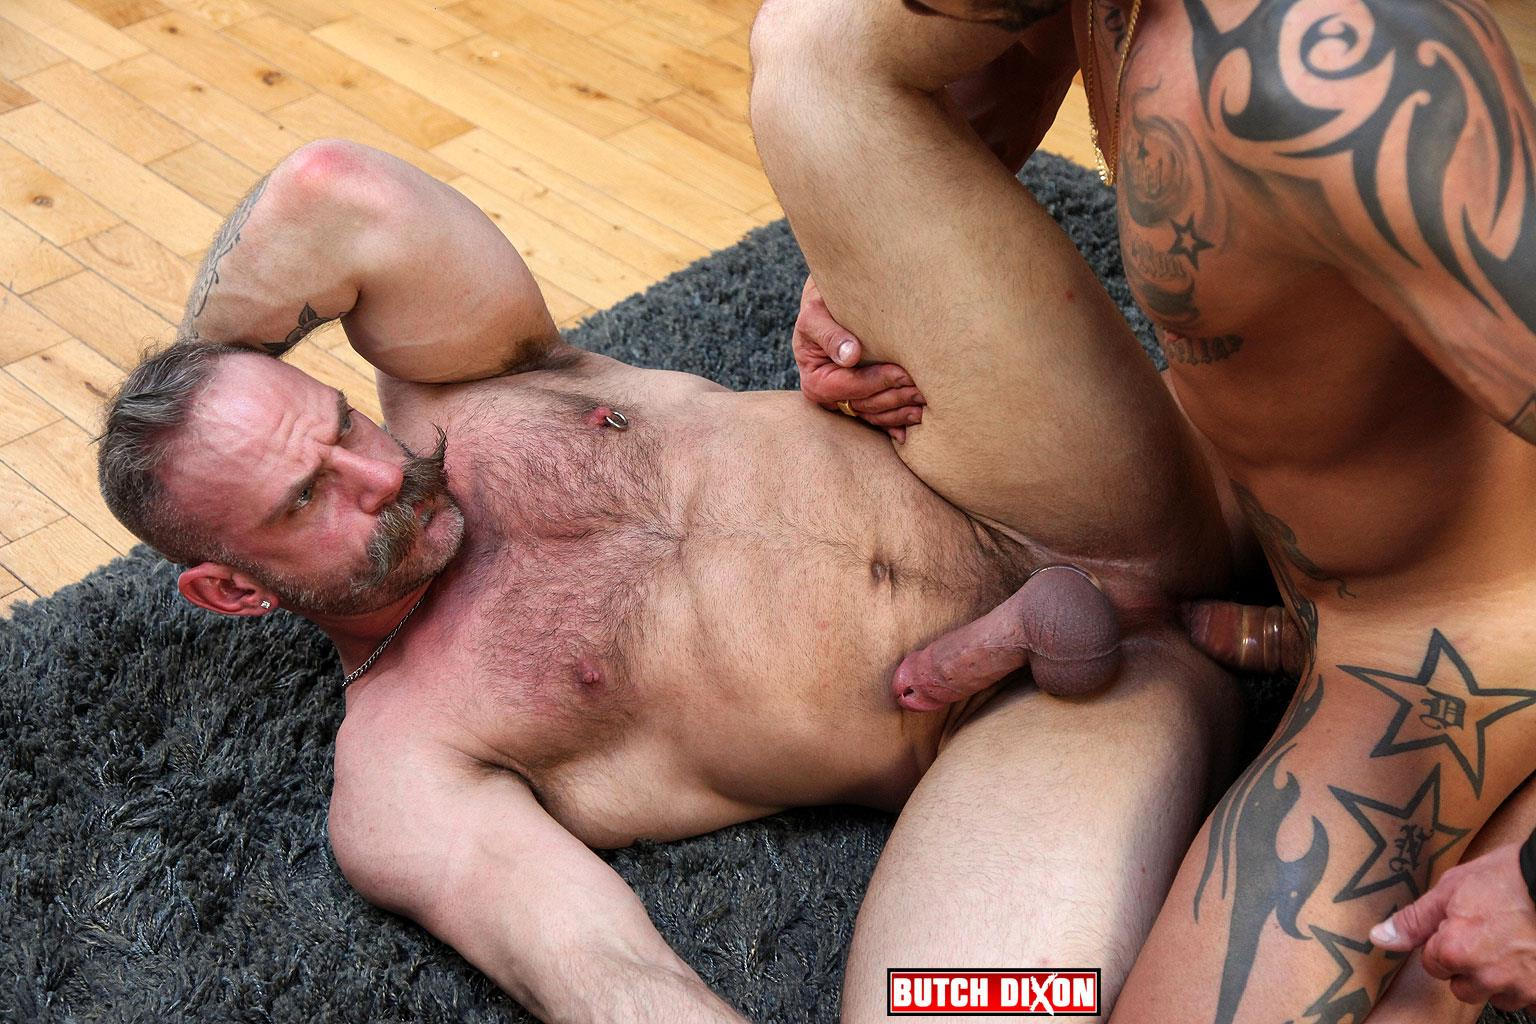 Butch Dixon Samuel Colt and Frank Valencia Hairy Muscle Daddy Getting Fucked By Latino Cock Amateur Gay Porn 12 Happy Fathers Day: Hairy Muscle Daddy Samuel Colt Taking A Big Cock Up The Ass